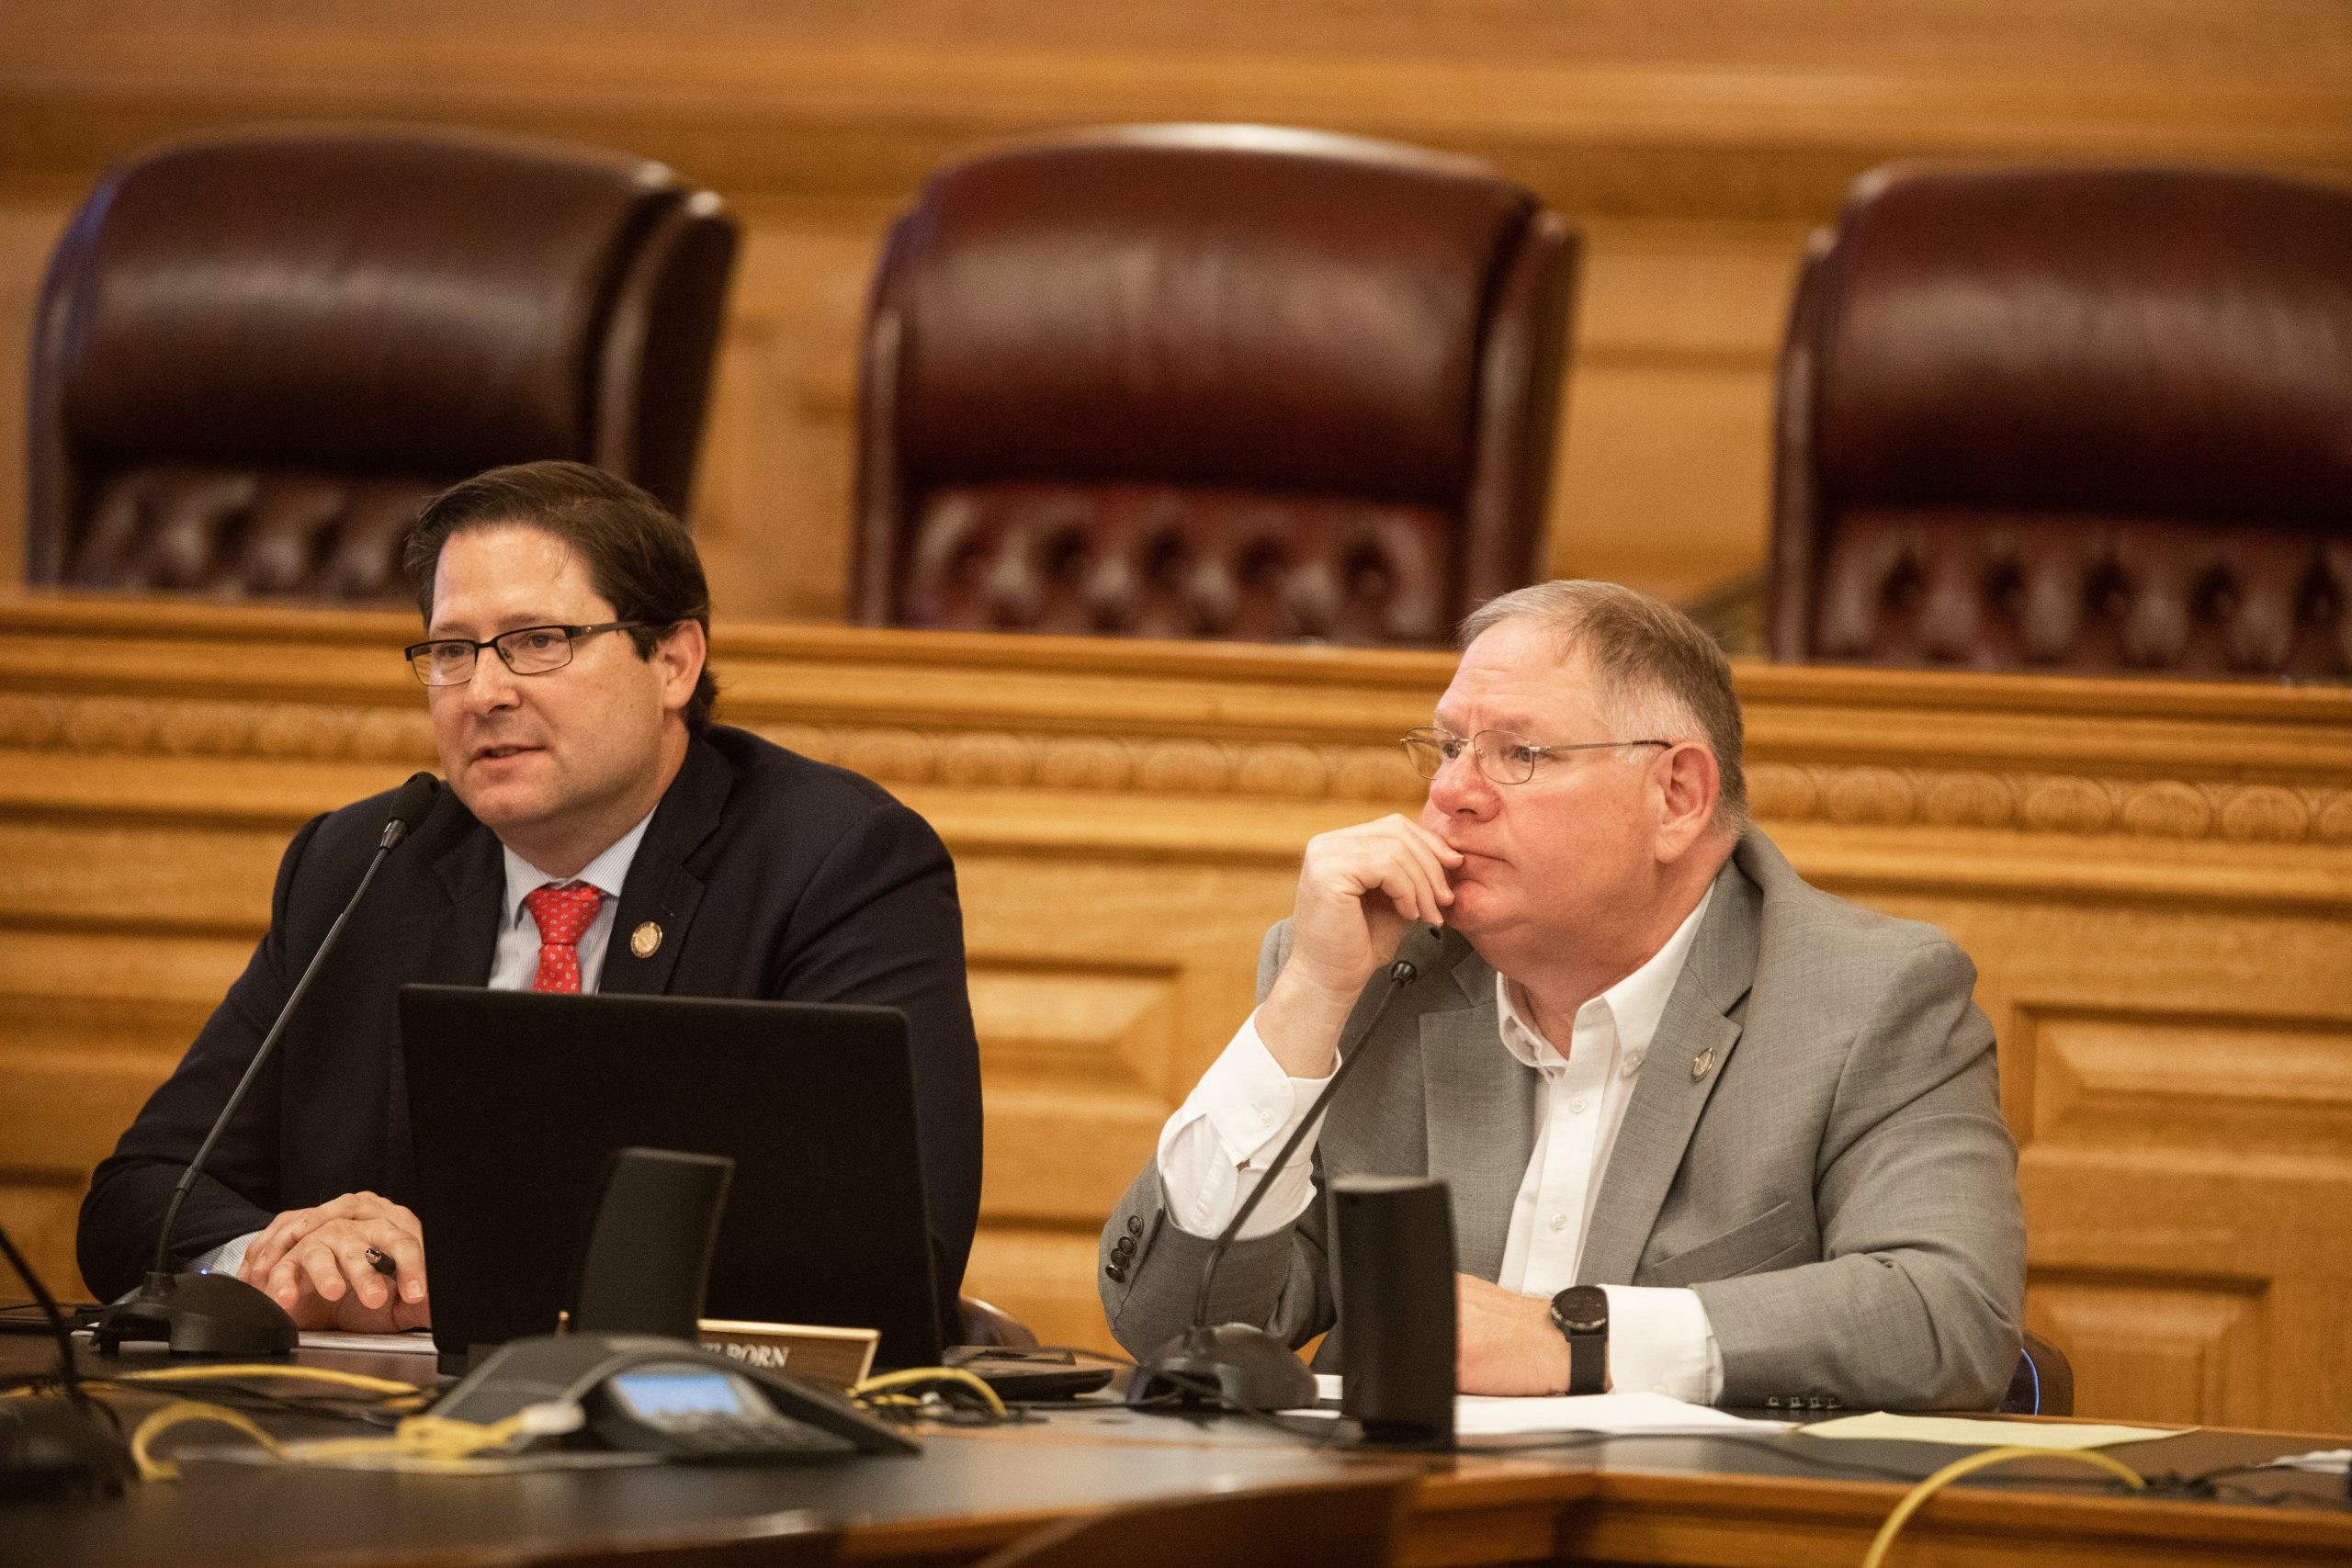 House Speaker Ron Ryckman, left, and Majority Leader Dan Hawkins endorsed the Legislative Coordinating Council's push to develop a plan to thwart potential spread at the Capitol of COVID-19 before start of the 2021 legislative session Jan. 11. (Nick Krug/Kansas Reflector)